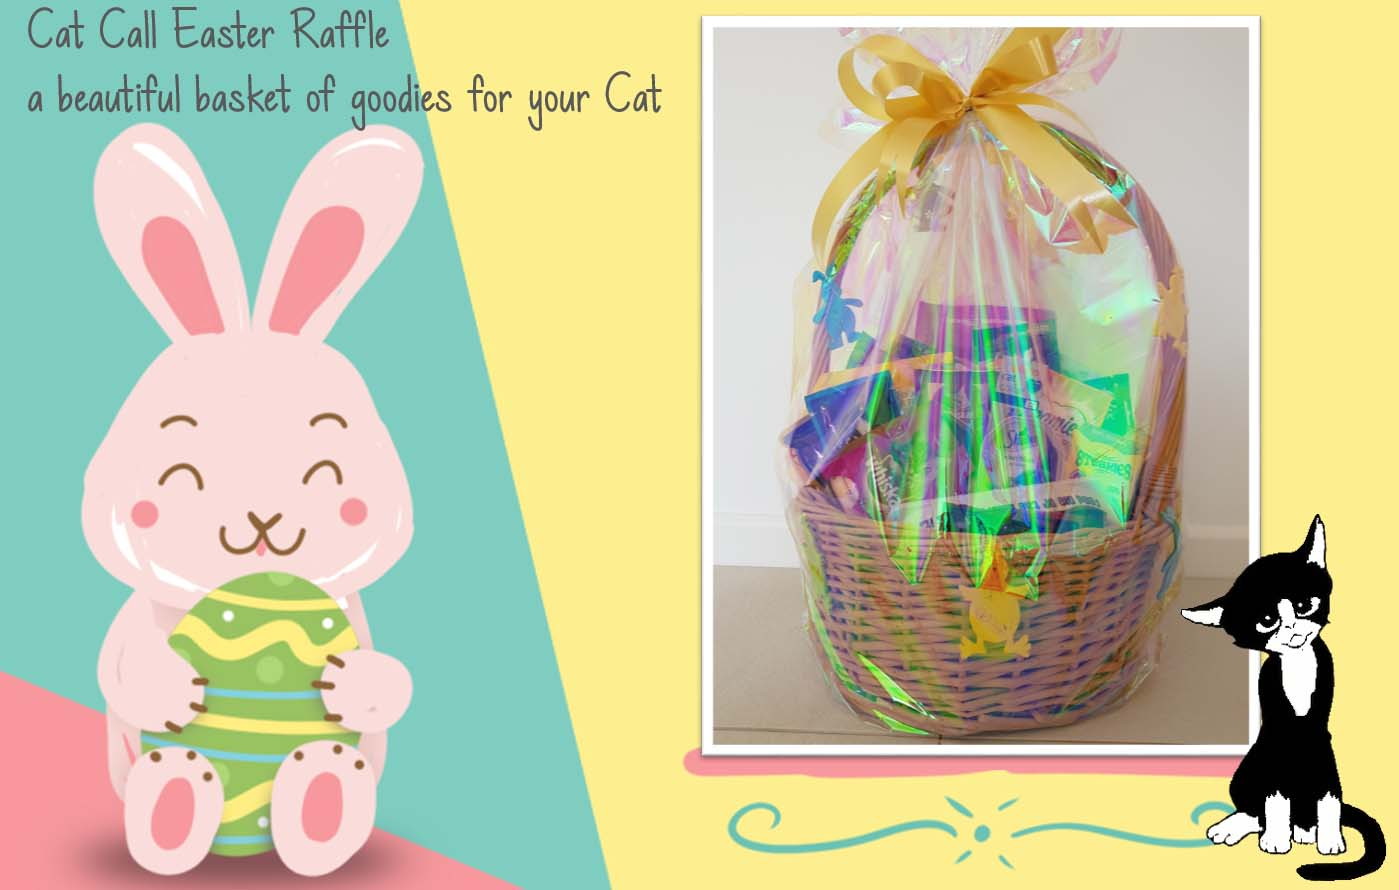 Cat Call charity Easter raffle